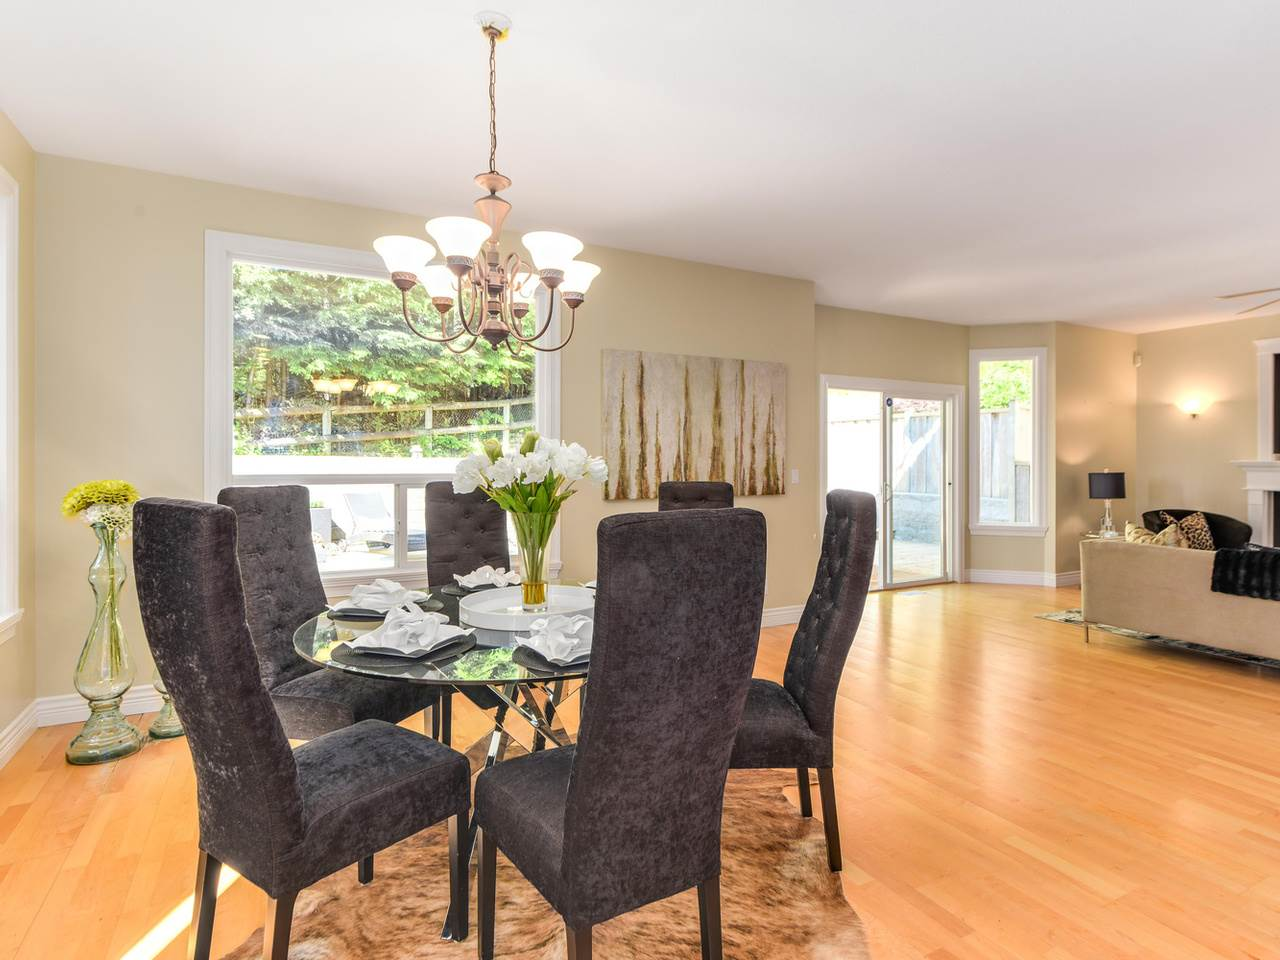 Photo 5: 3392 PLATEAU Boulevard in Coquitlam: Westwood Plateau House for sale : MLS® # R2093003